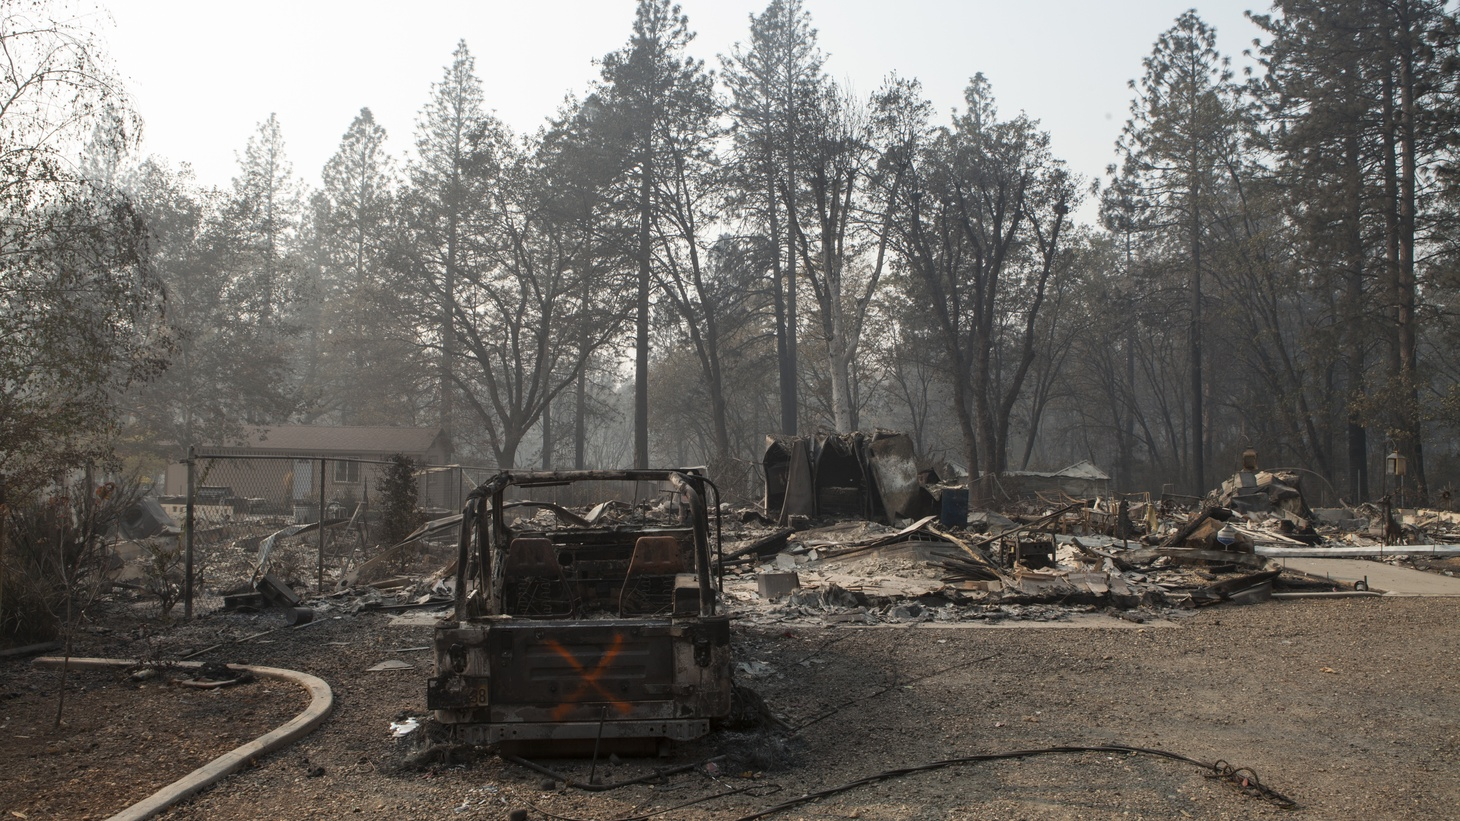 Damage is seen in a Paradise, California, neighborhood, Nov. 17, 2018, near where soldiers from the California Army National Guard's 649th Engineer Company, 579th Engineer Battalion, 49th Military Police Brigade, conducted debris clearing operations in support of state agencies conducting search operations days after the Camp Fire overran the town.